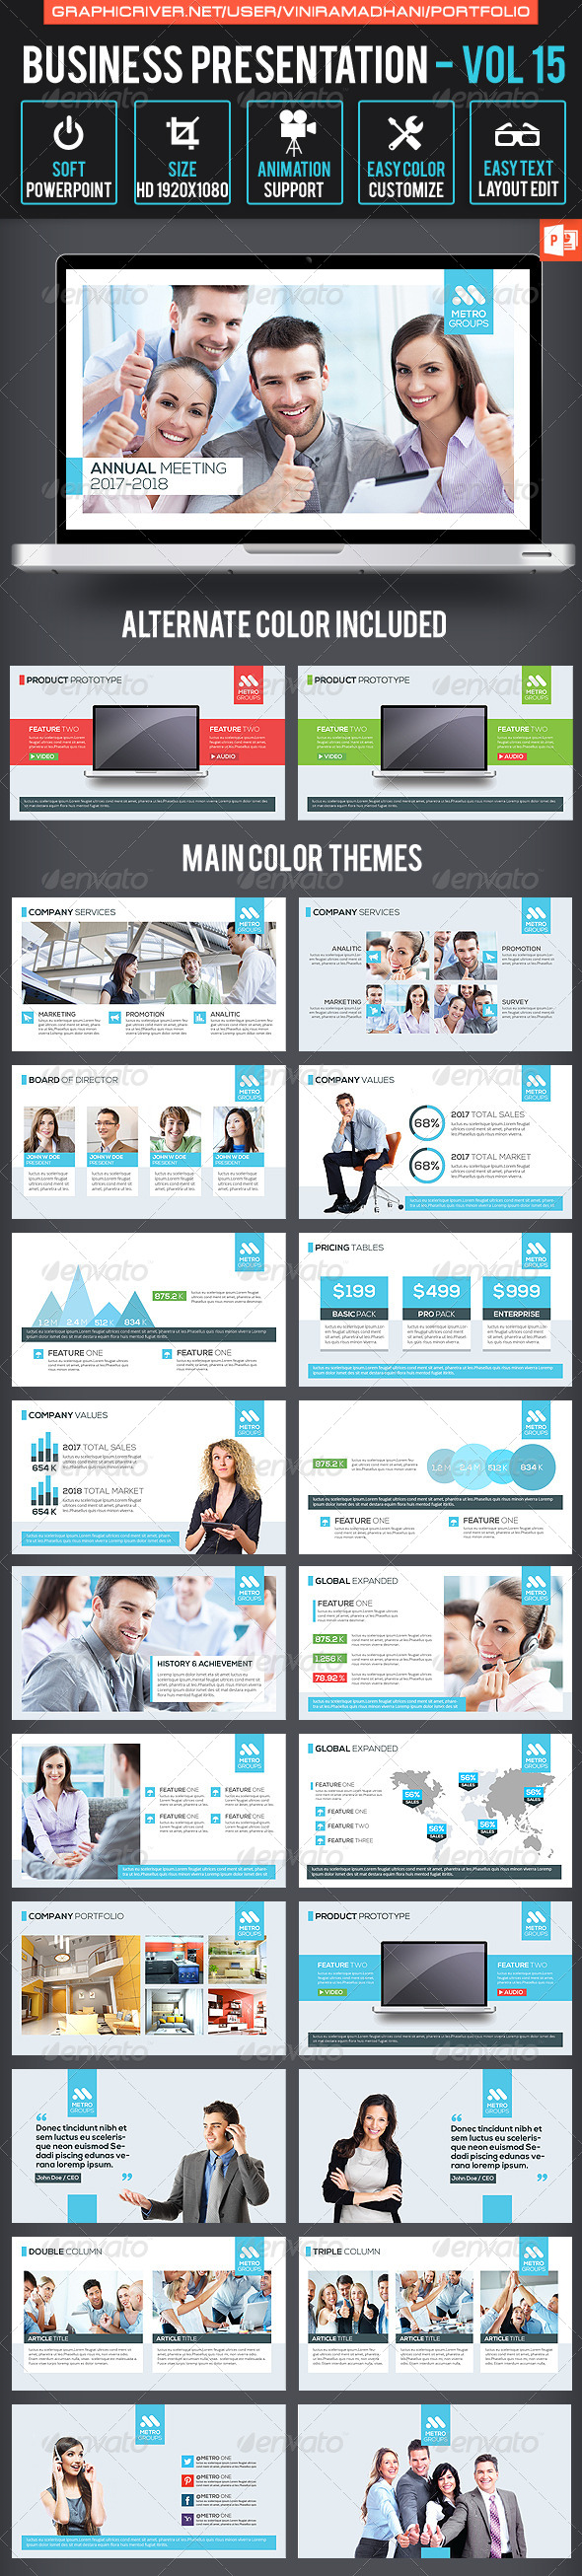 GraphicRiver Business Presentation Volume 15 7605447